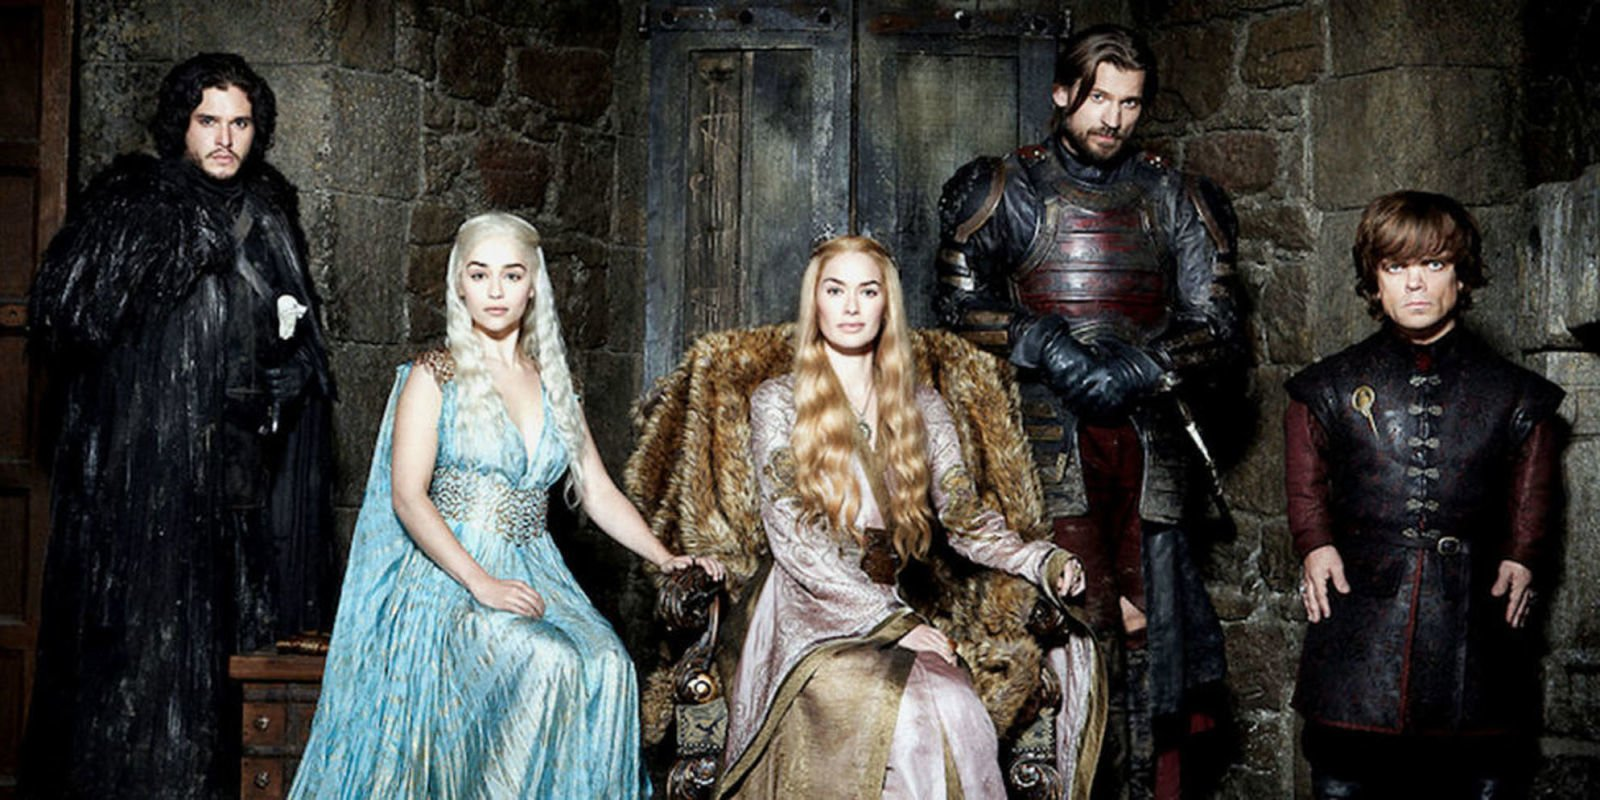 Here's what Game of Thrones would look like if the intended actors had been cast https://t.co/dgxAj6QjS7 https://t.co/VvjXGZ02sr